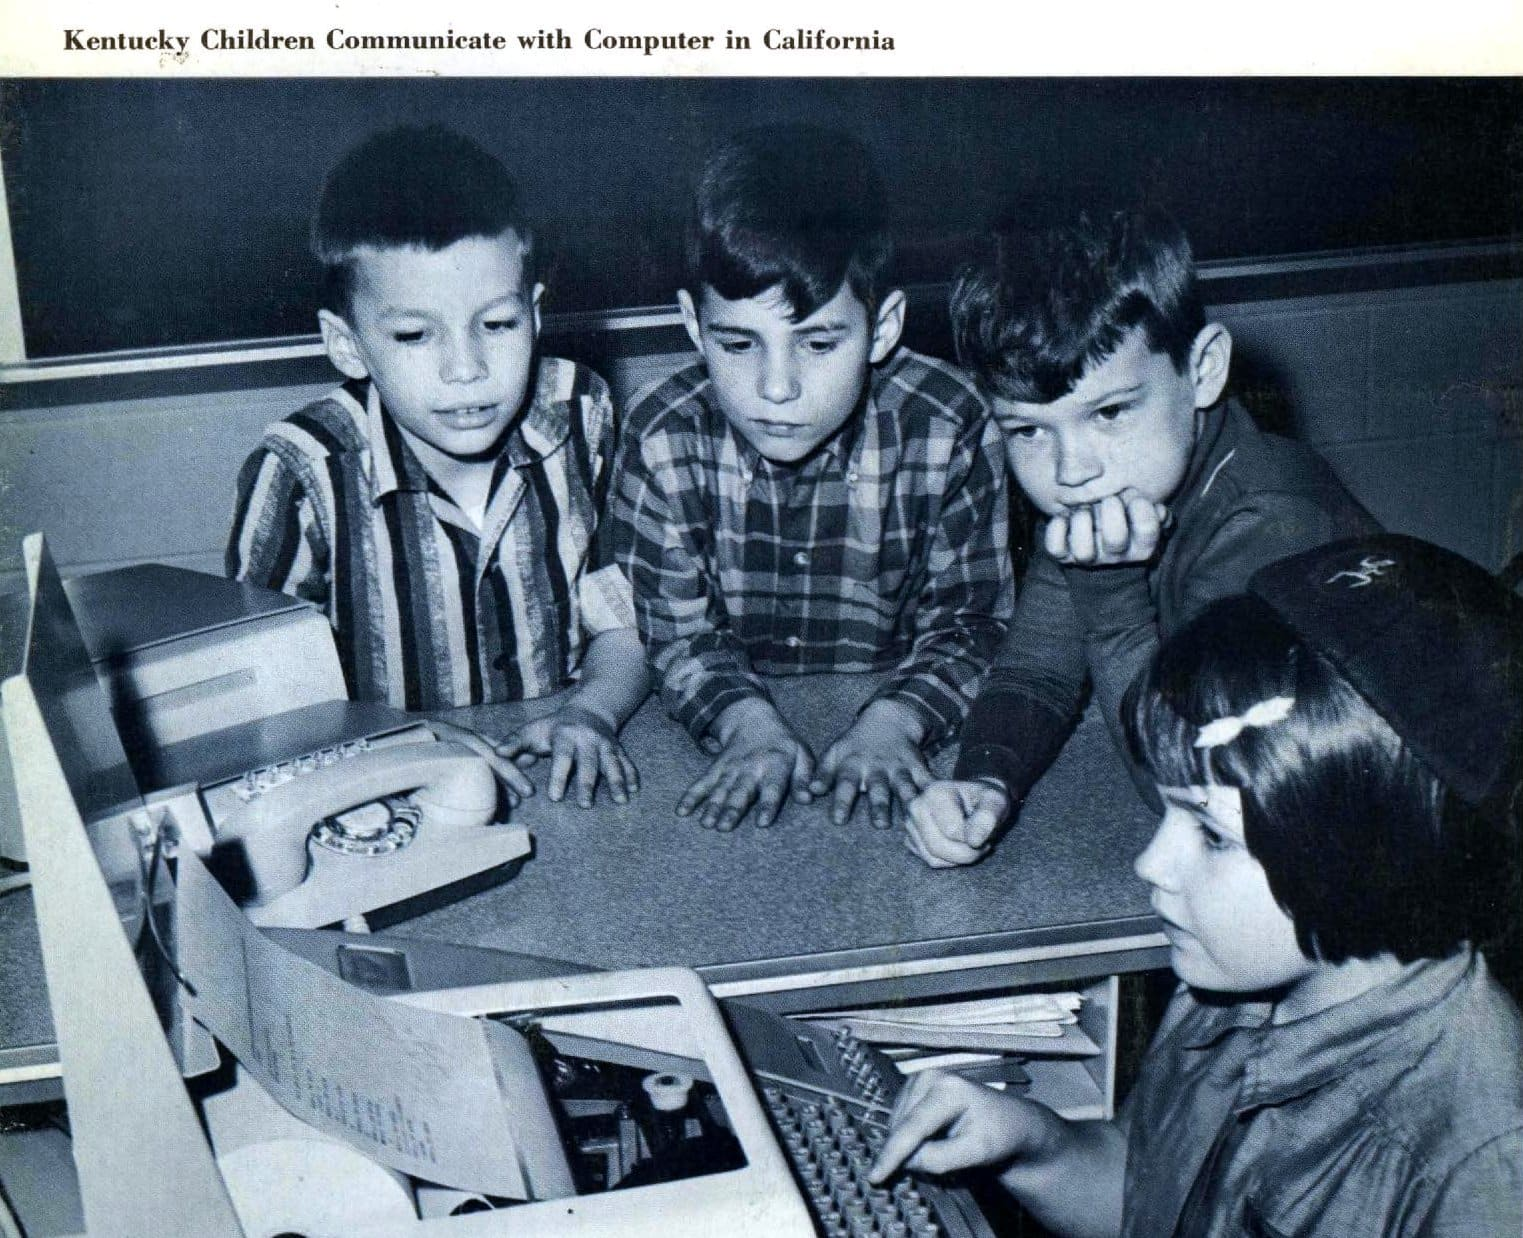 Kids in 1967 learning how to use computers